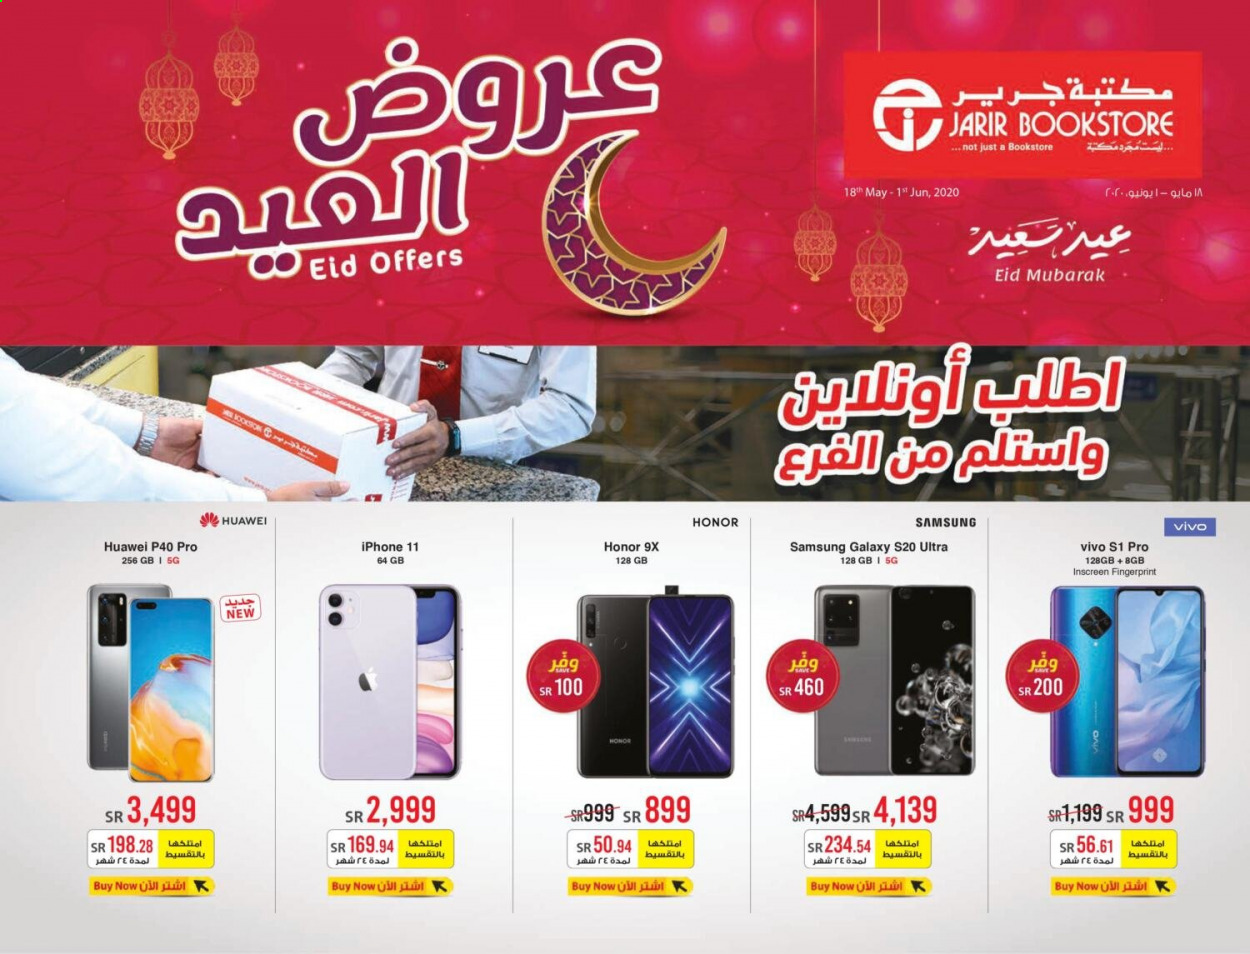 Jarir Bookstore Flyer  - 05.18.2020 - 06.01.2020. Page 1.